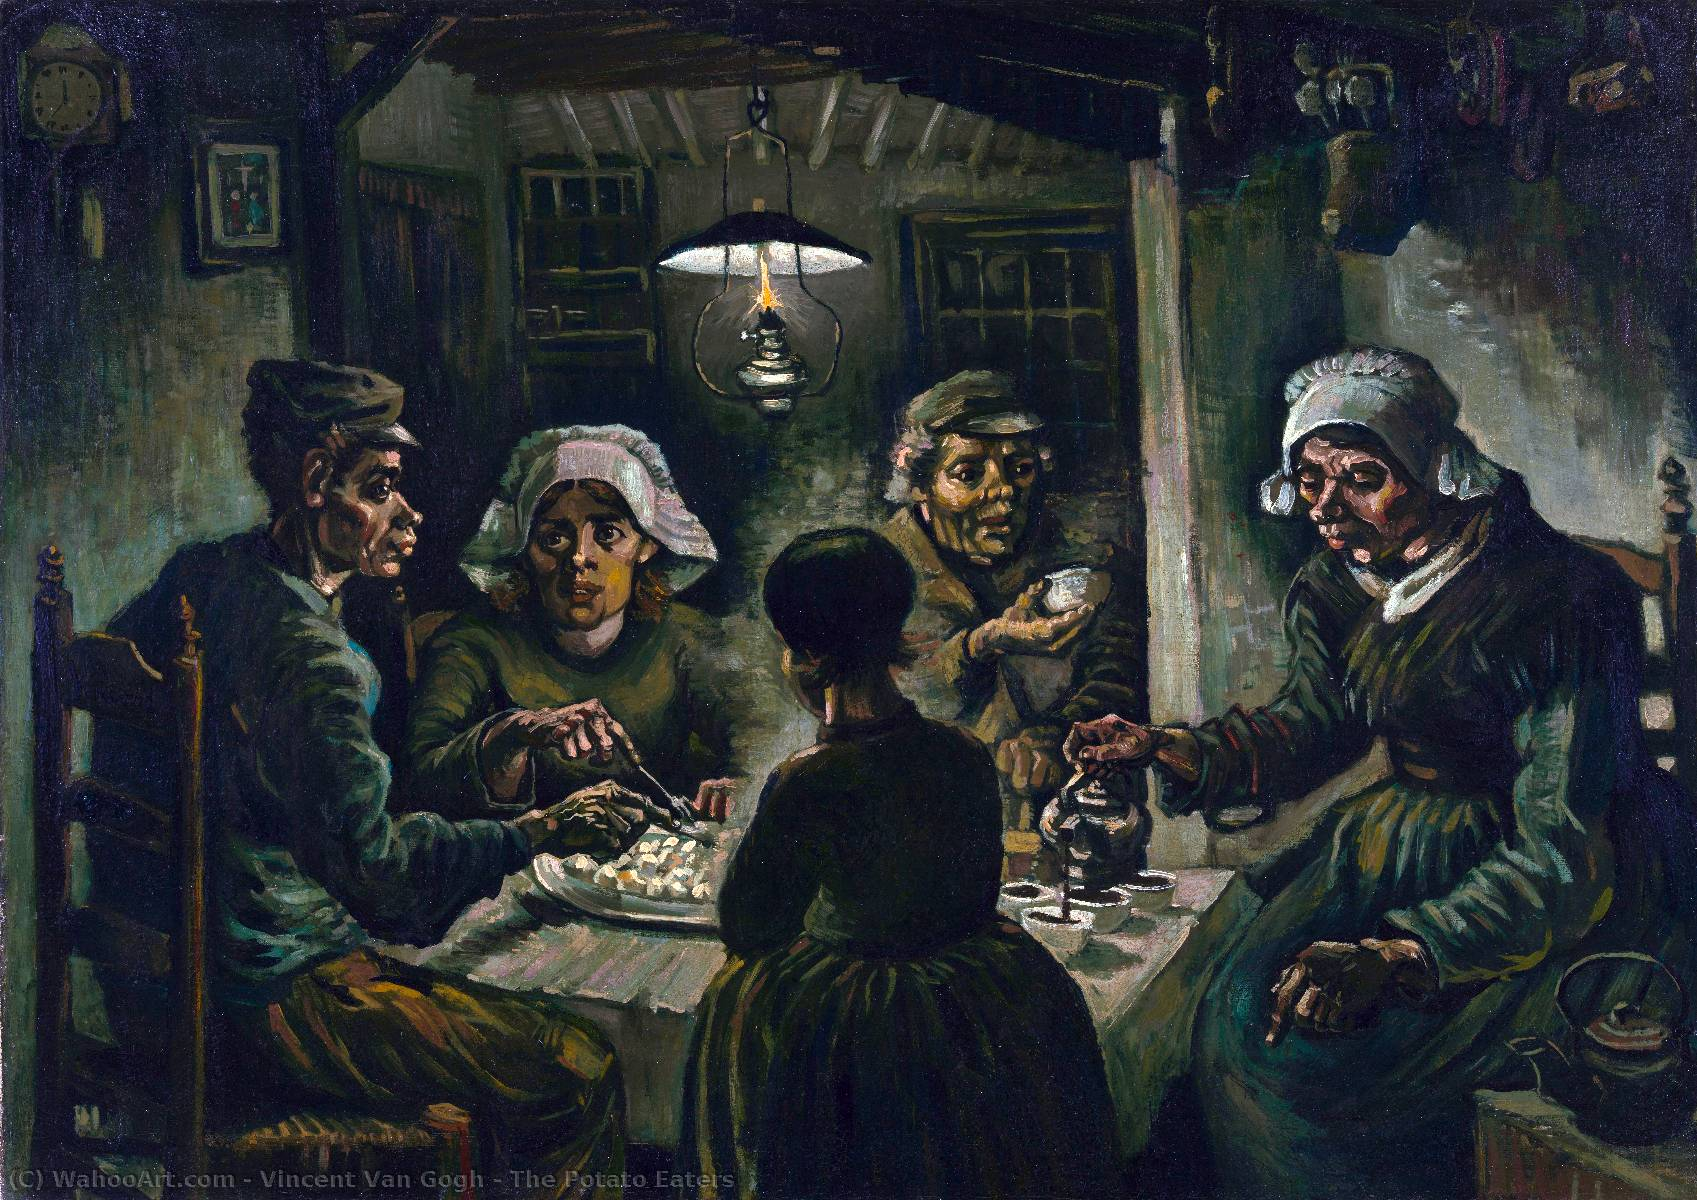 famous painting The Potato Eaters of Vincent Van Gogh